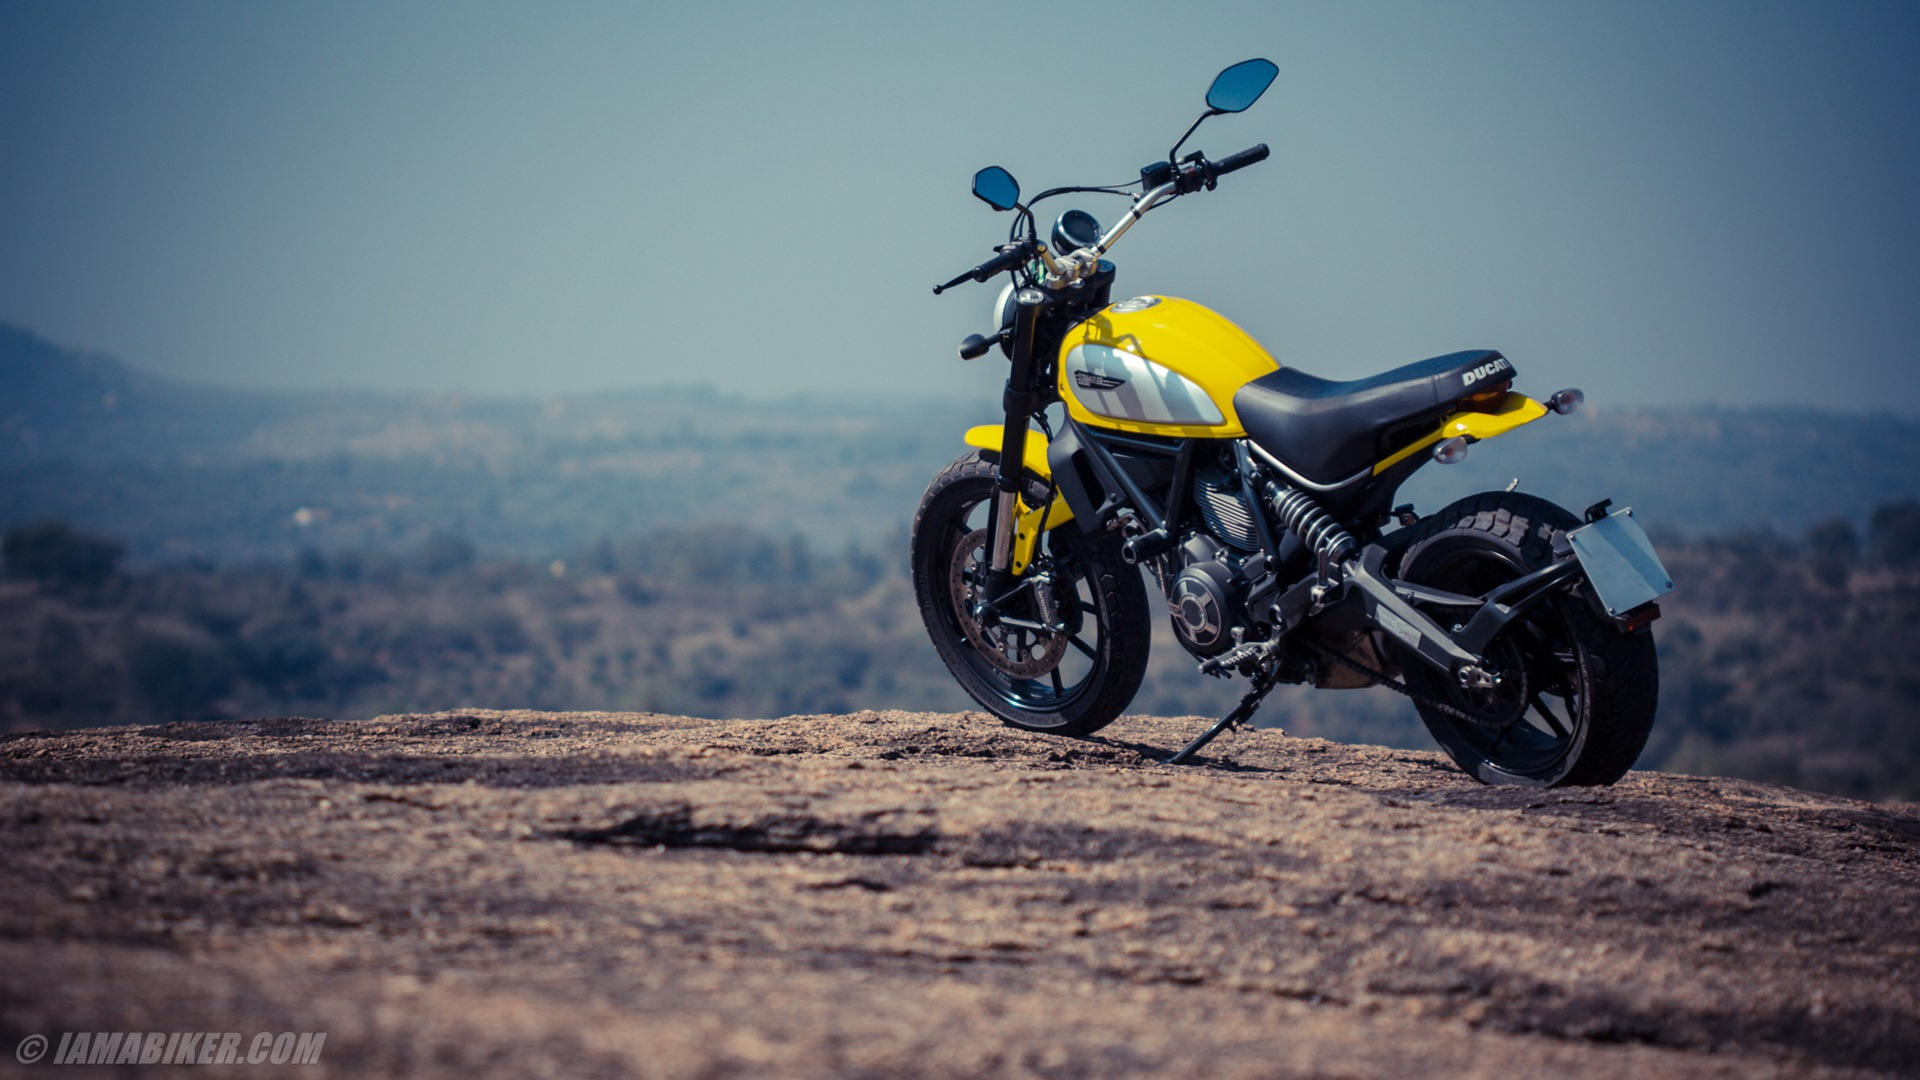 ducati scrambler hd wallpapers | iamabiker